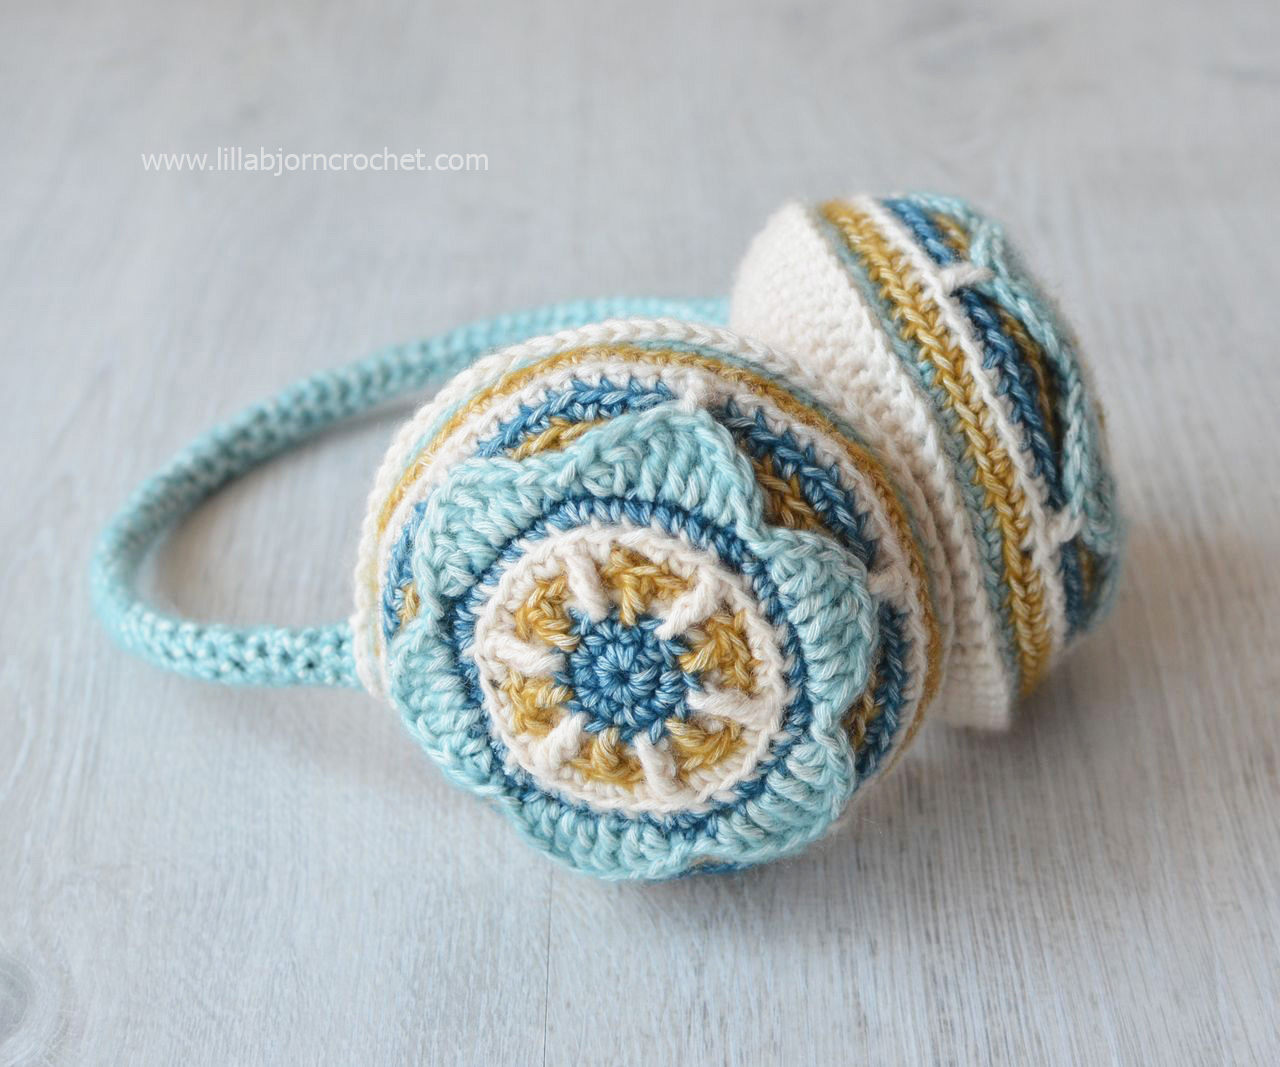 Crocheted ear muffs. Designed by Lilla Bjorn Crochet - overlay crochet